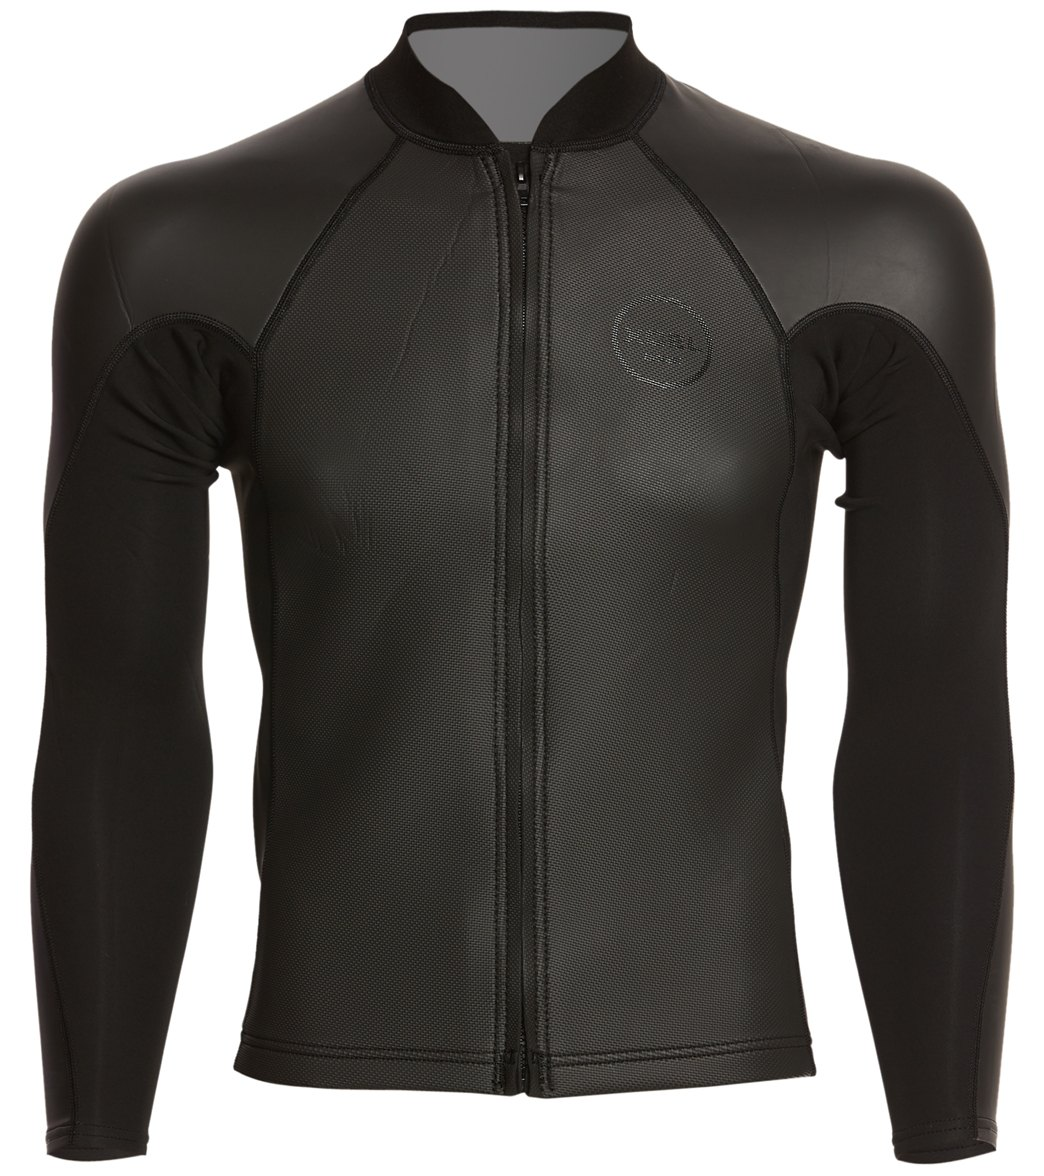 Xcel Men s 2 1MM Axis SharkSkin Front Zip Wetsuit Jacket at ... 6a563cdf5